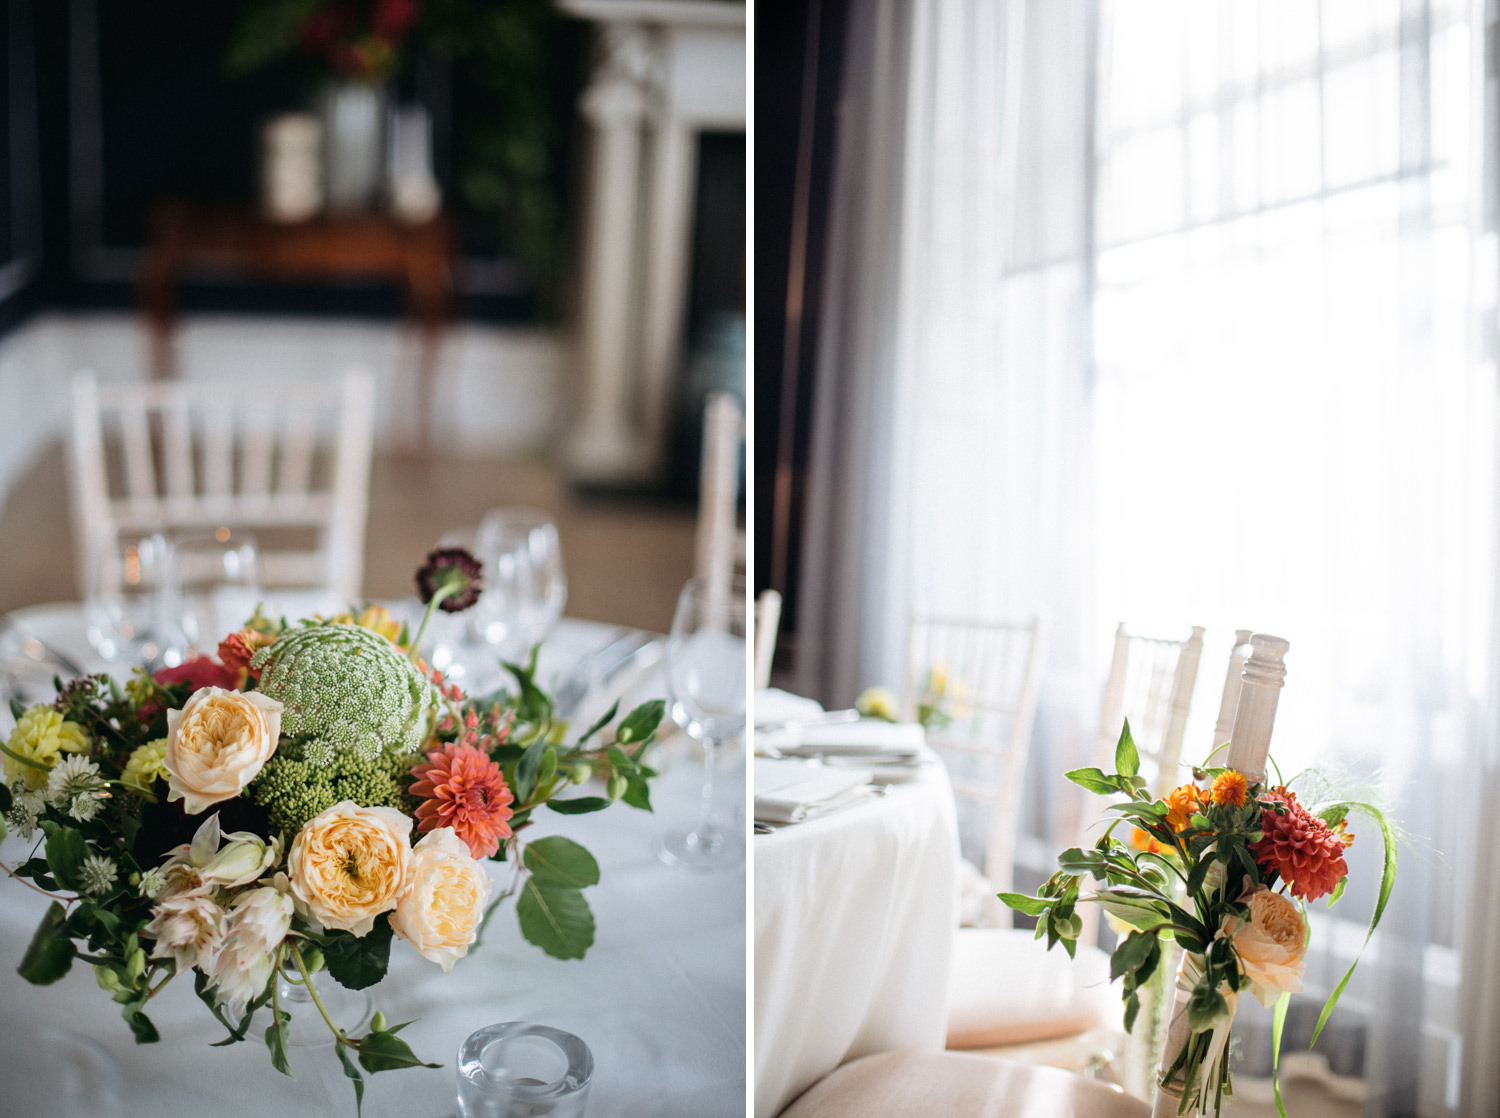 fitzwilliam place wedding details